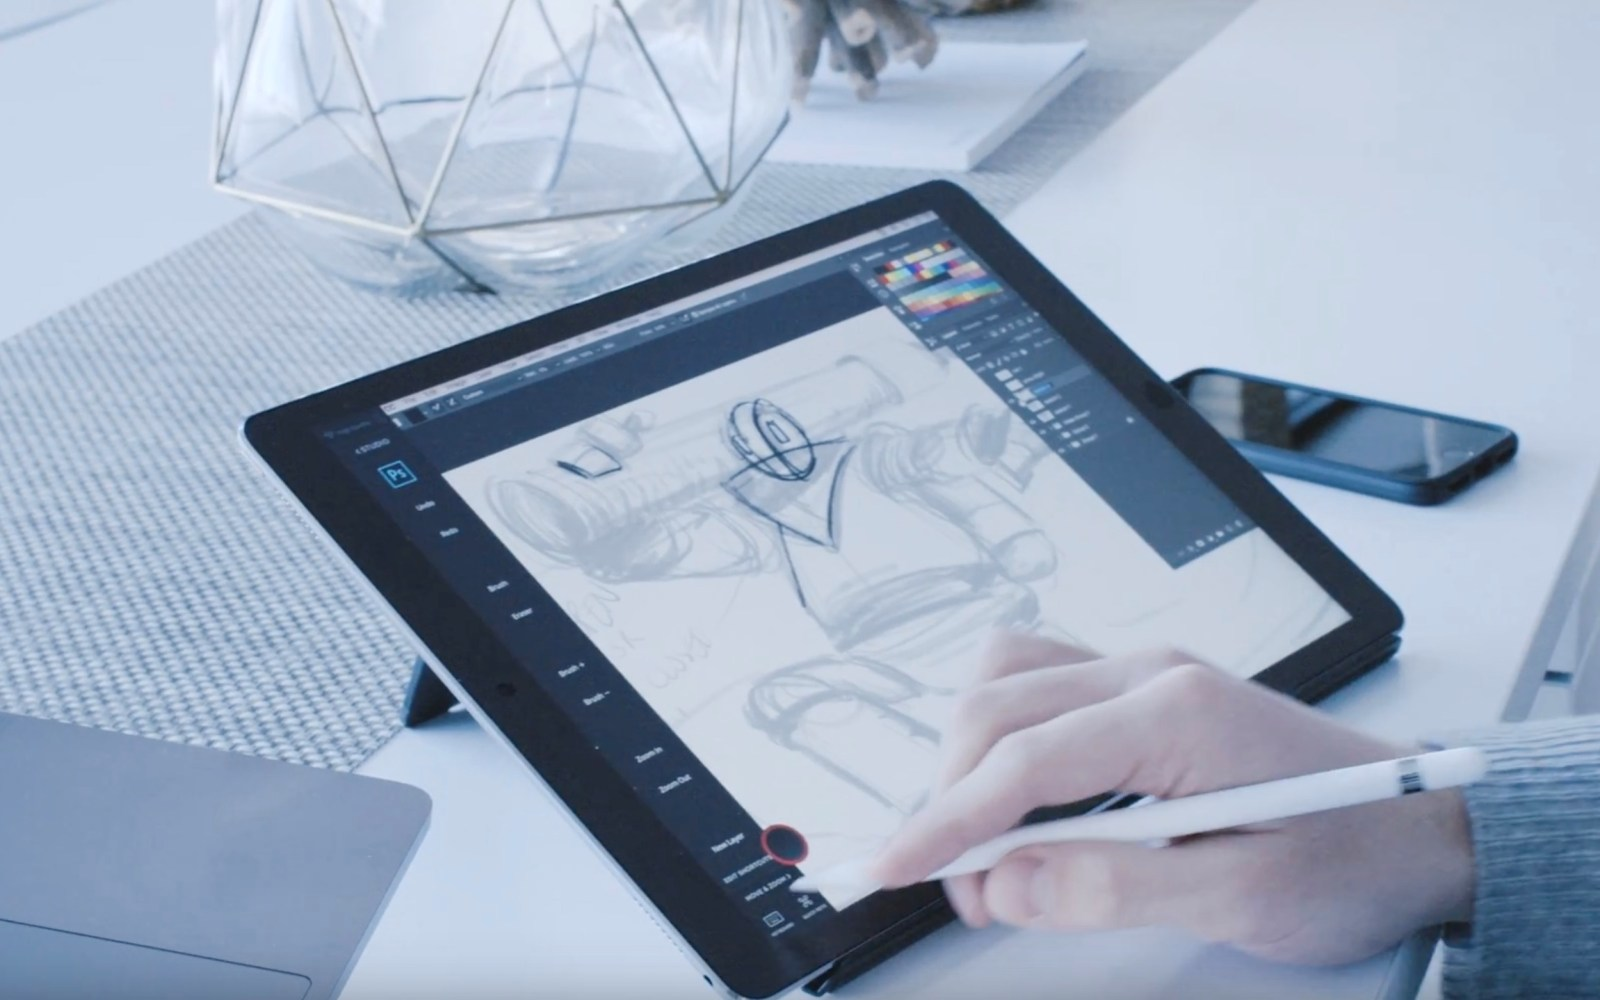 Astropad launches new second-screen Studio app for iPad Pro with full Apple Pencil support + improved performance